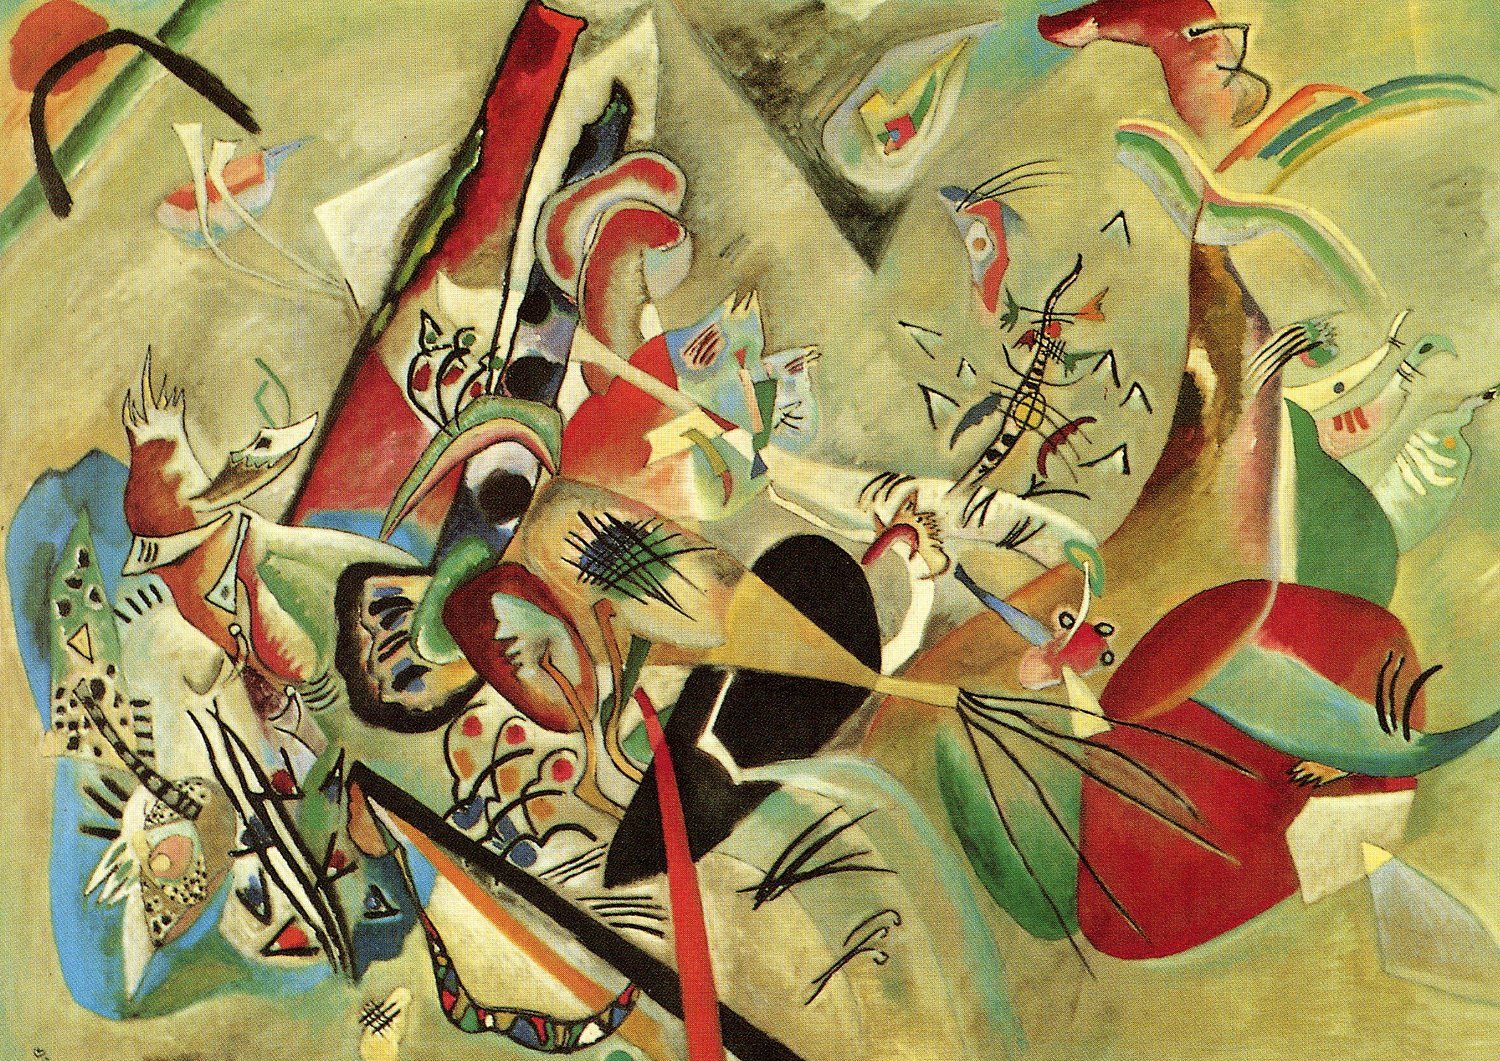 Cuadros Wassily Kandinsky Kandinsky Lunivers En Couleurs Kandinsky The World In Color